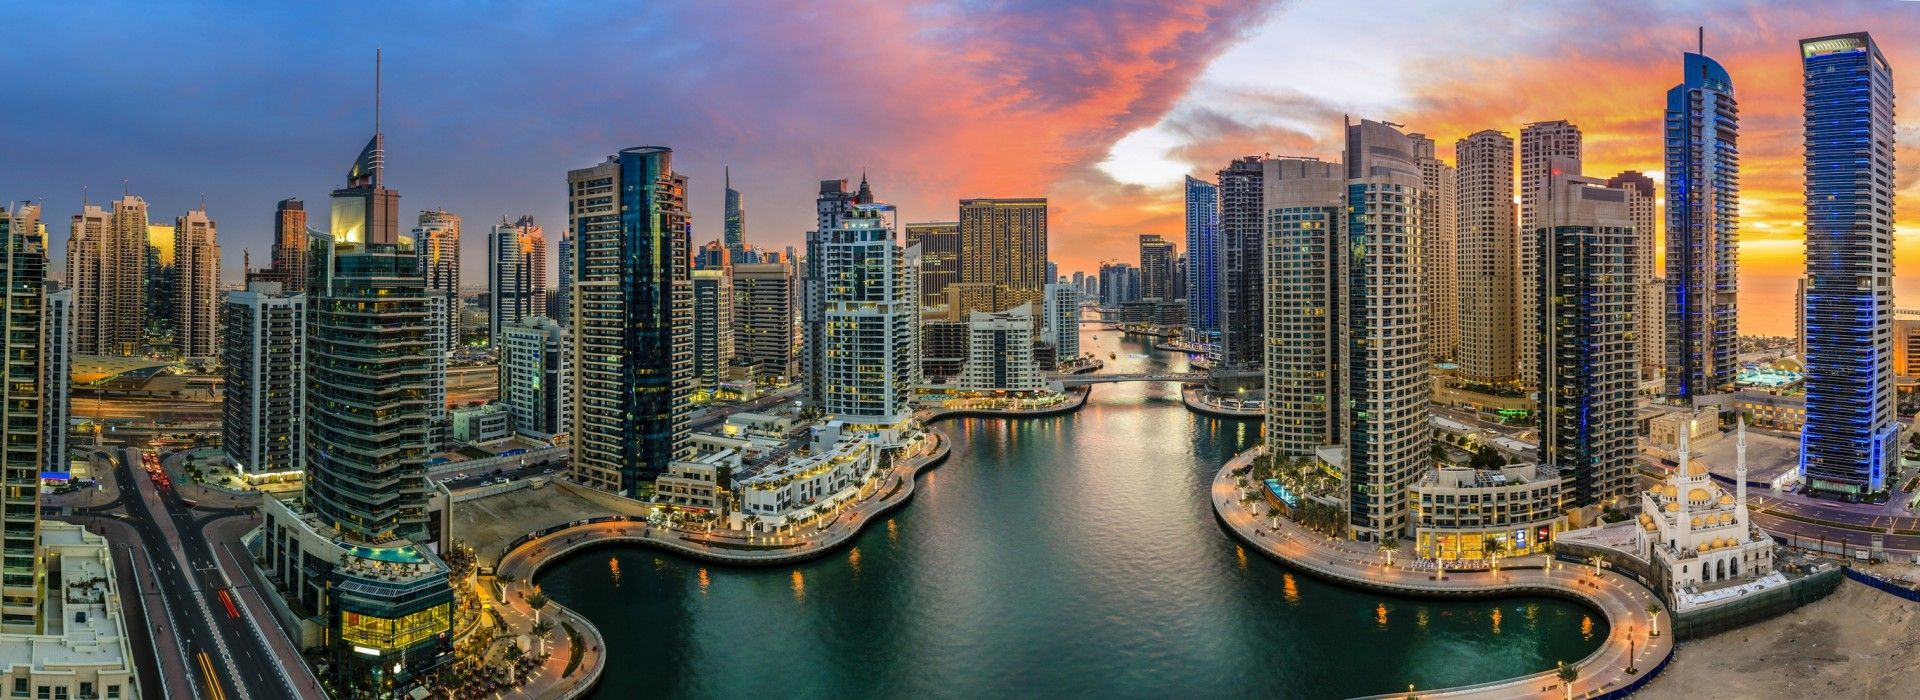 Cultural, religious and historic sites Tours in Middle East